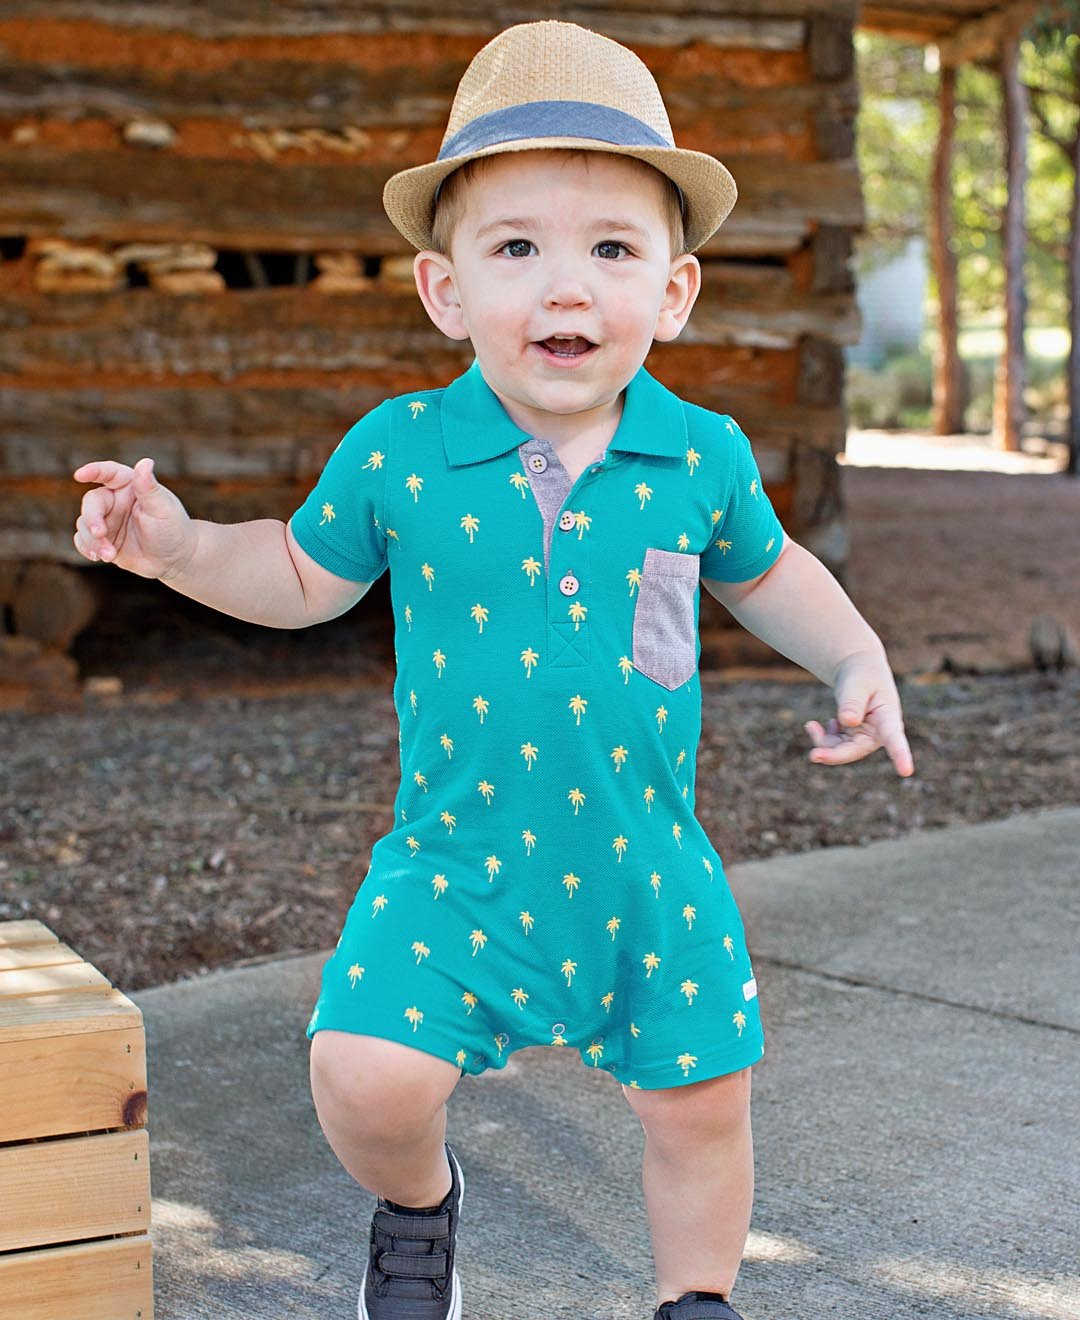 Beautiful Toddler Suits For Weddings Images - Wedding Ideas ...